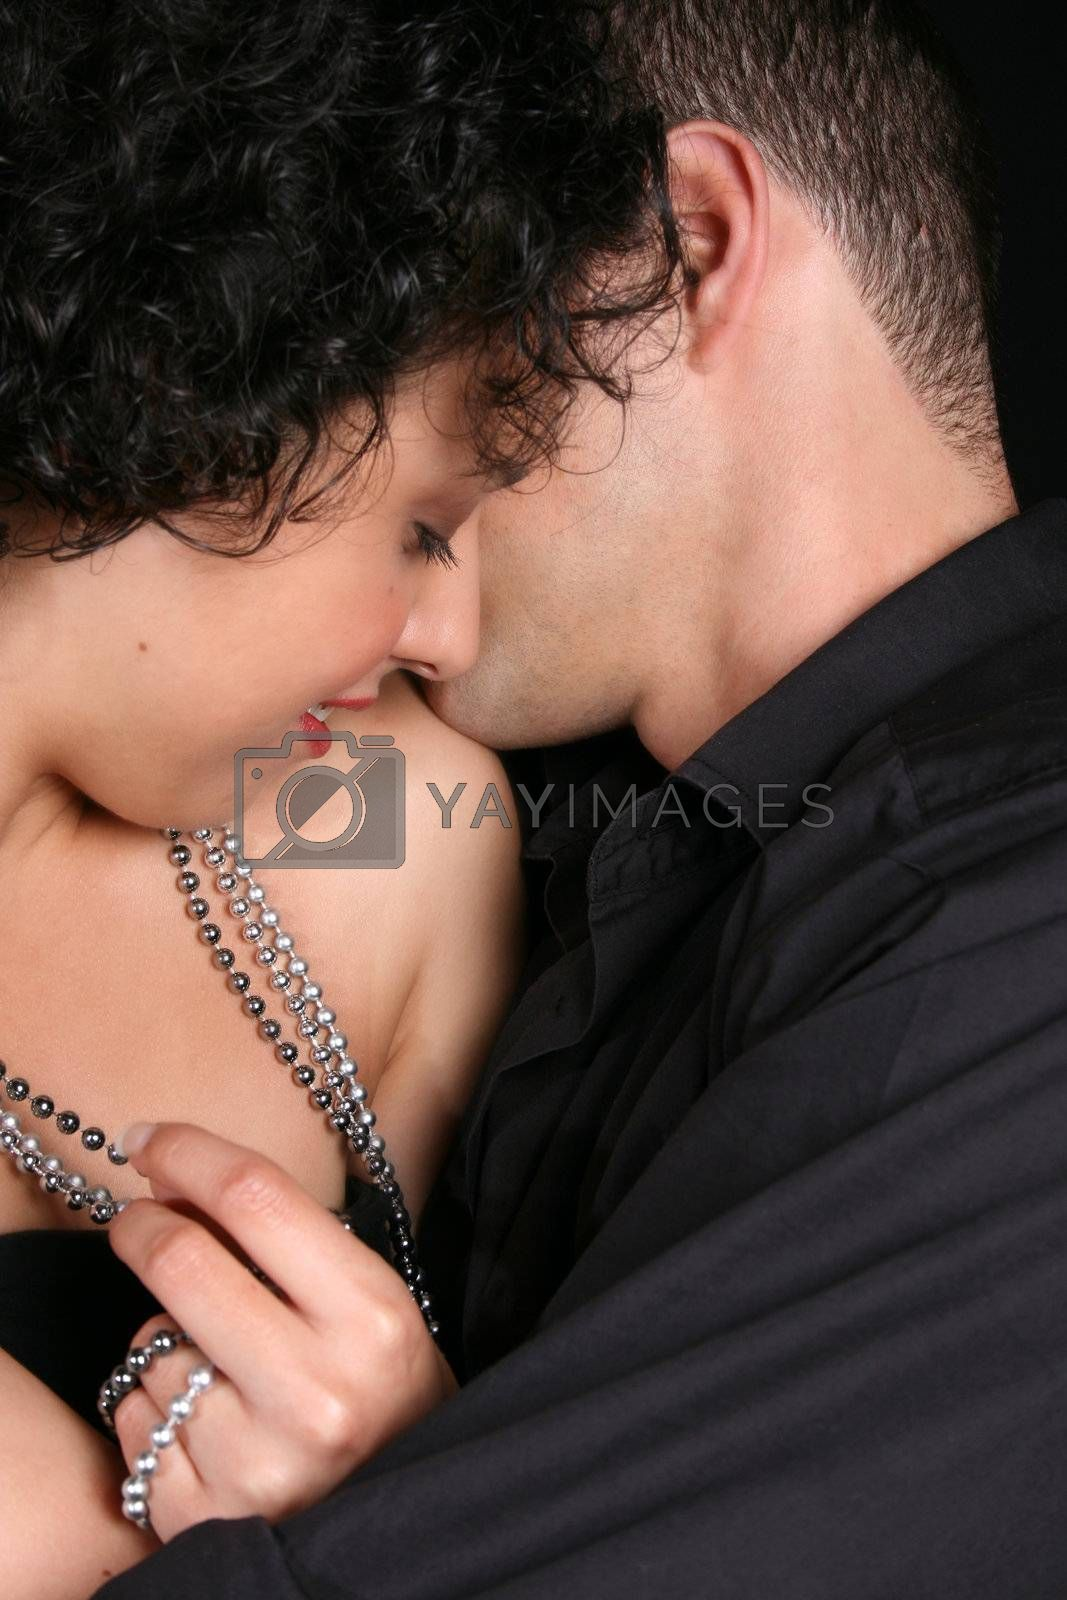 Loving couple in an embrace, female looking down